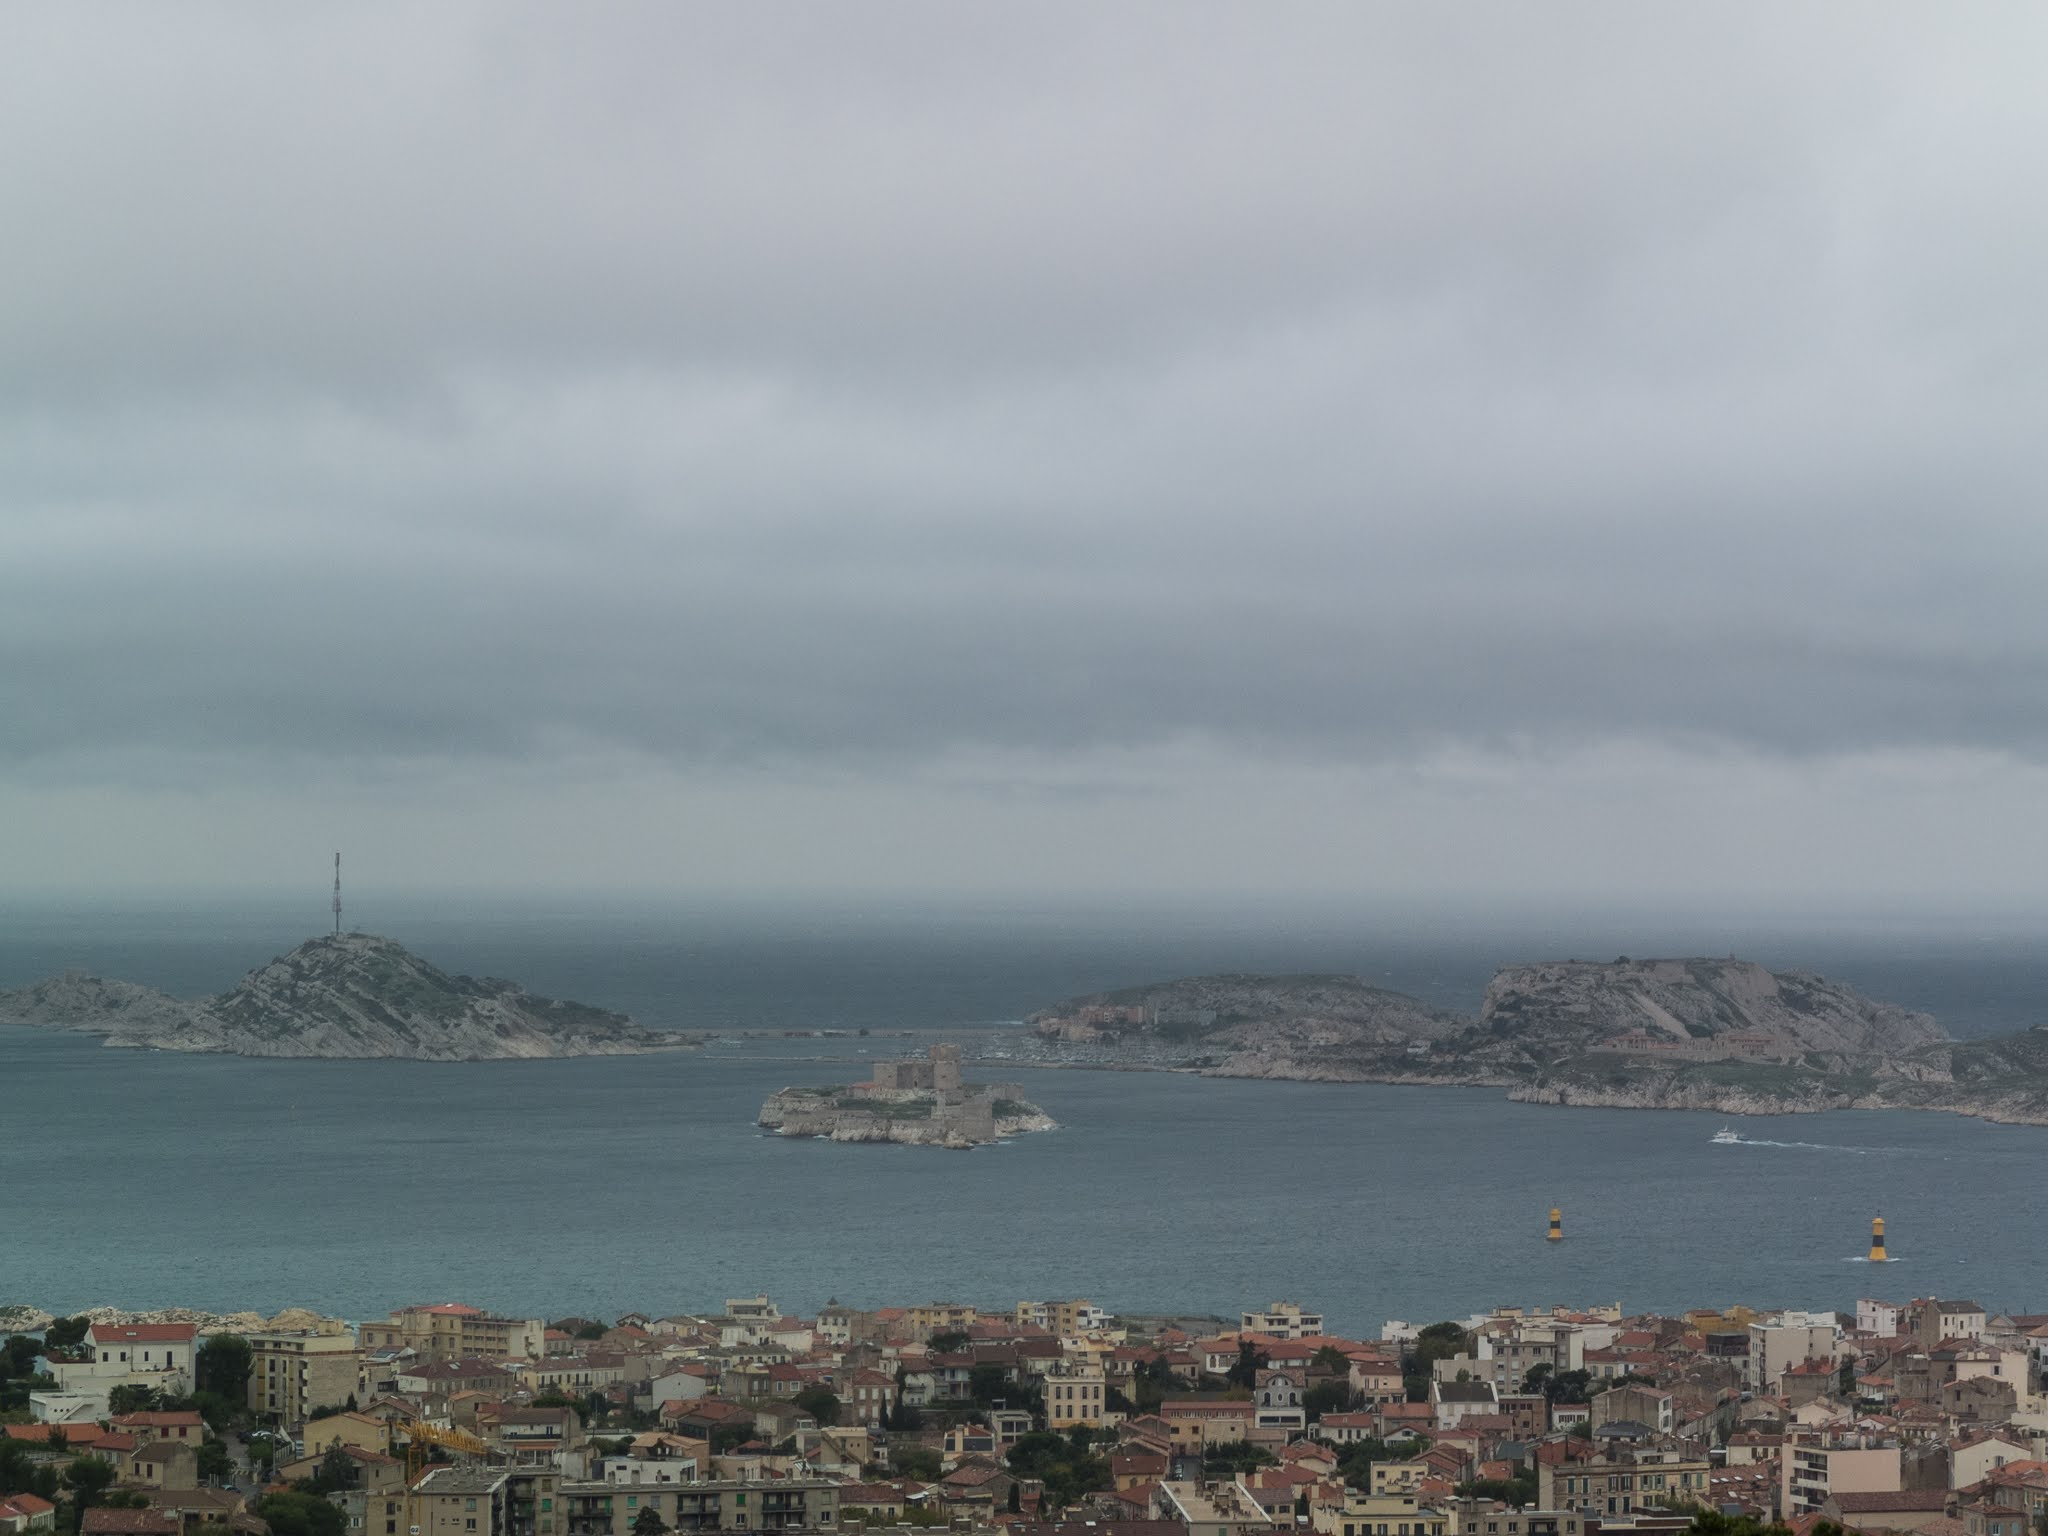 Les Îles du Frioul in Marseille harbour seen from the Basilica.